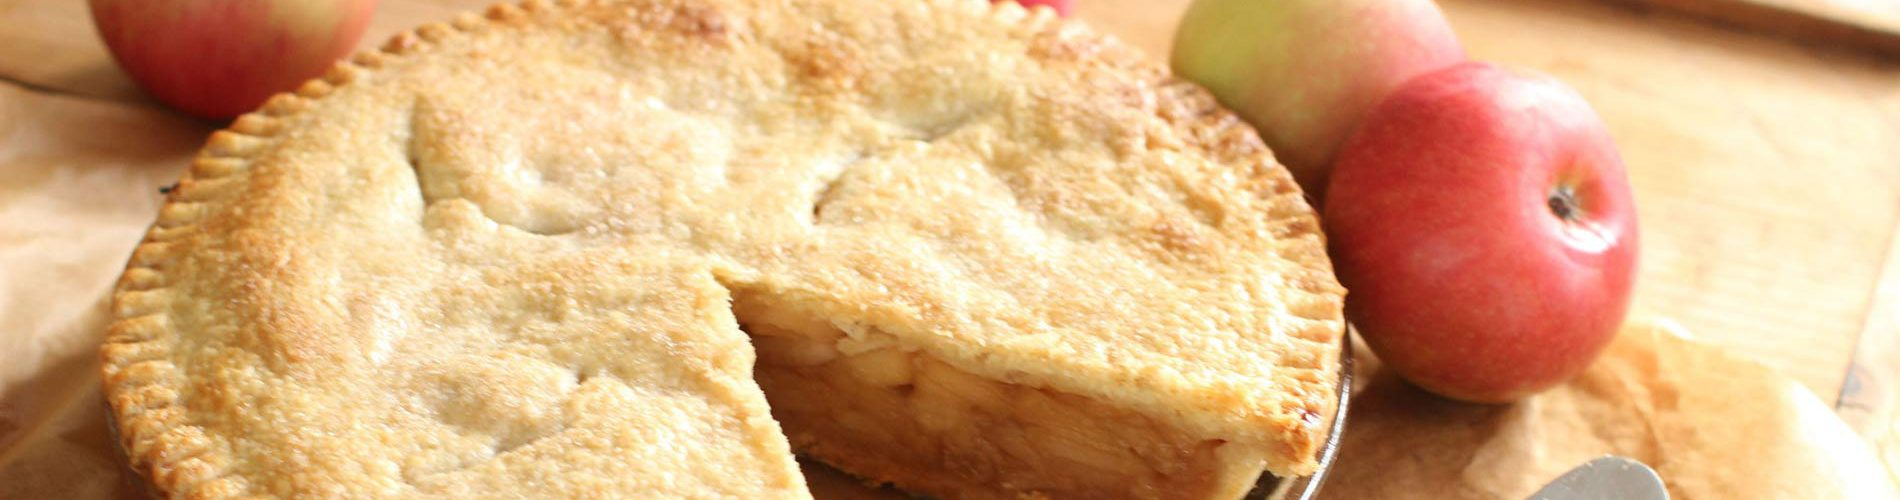 apple pie new york